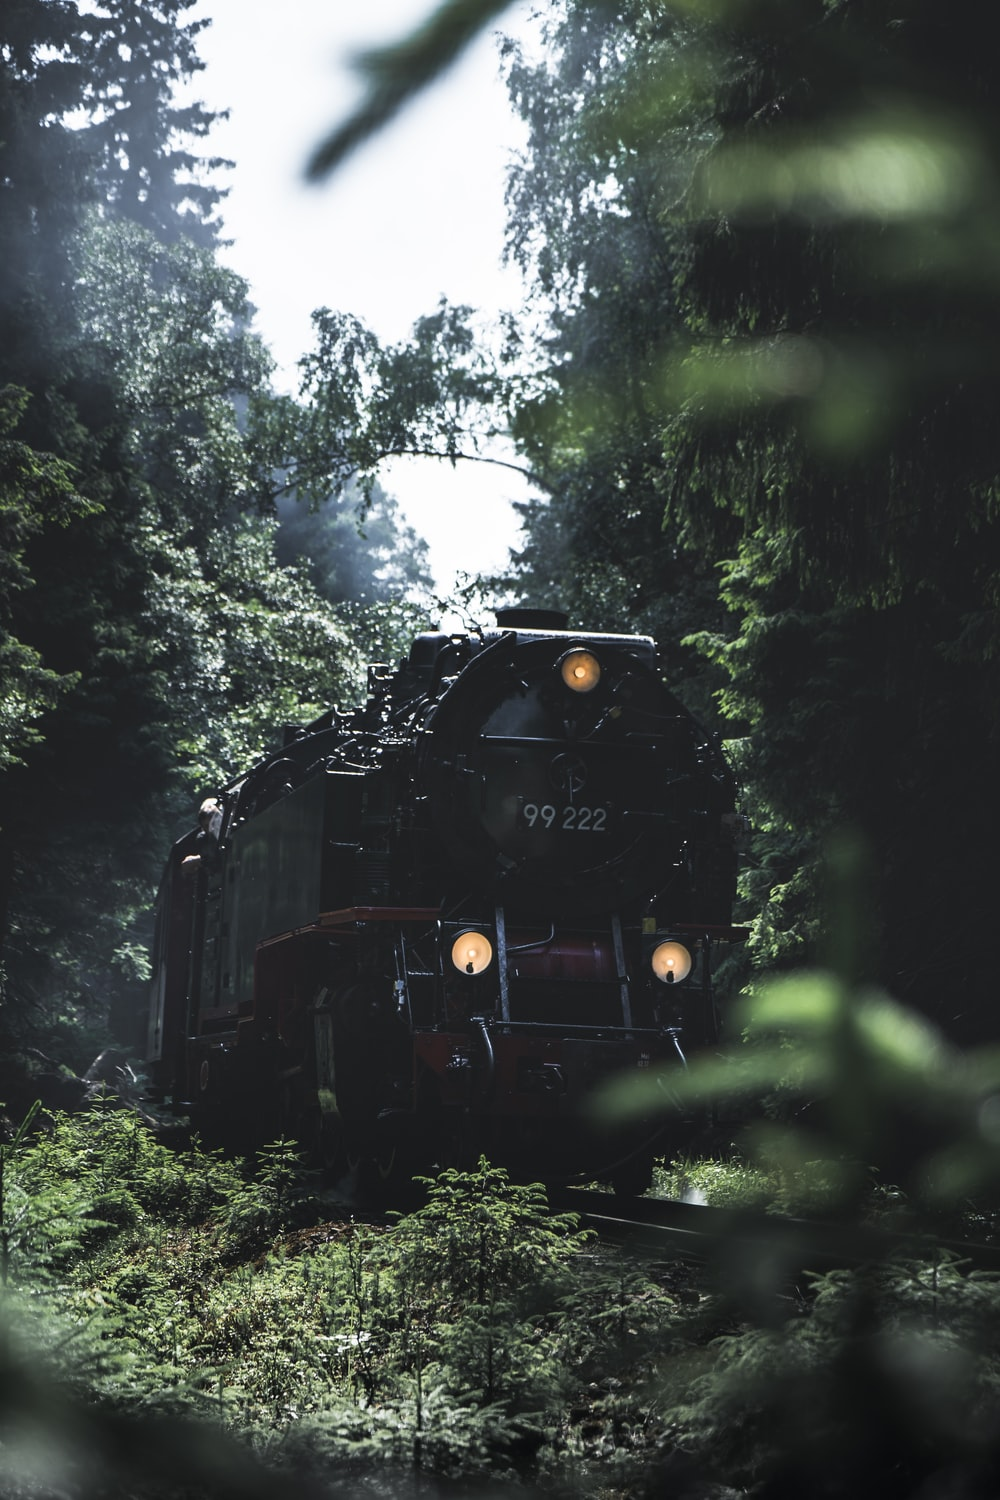 black train in the middle of forest during daytime